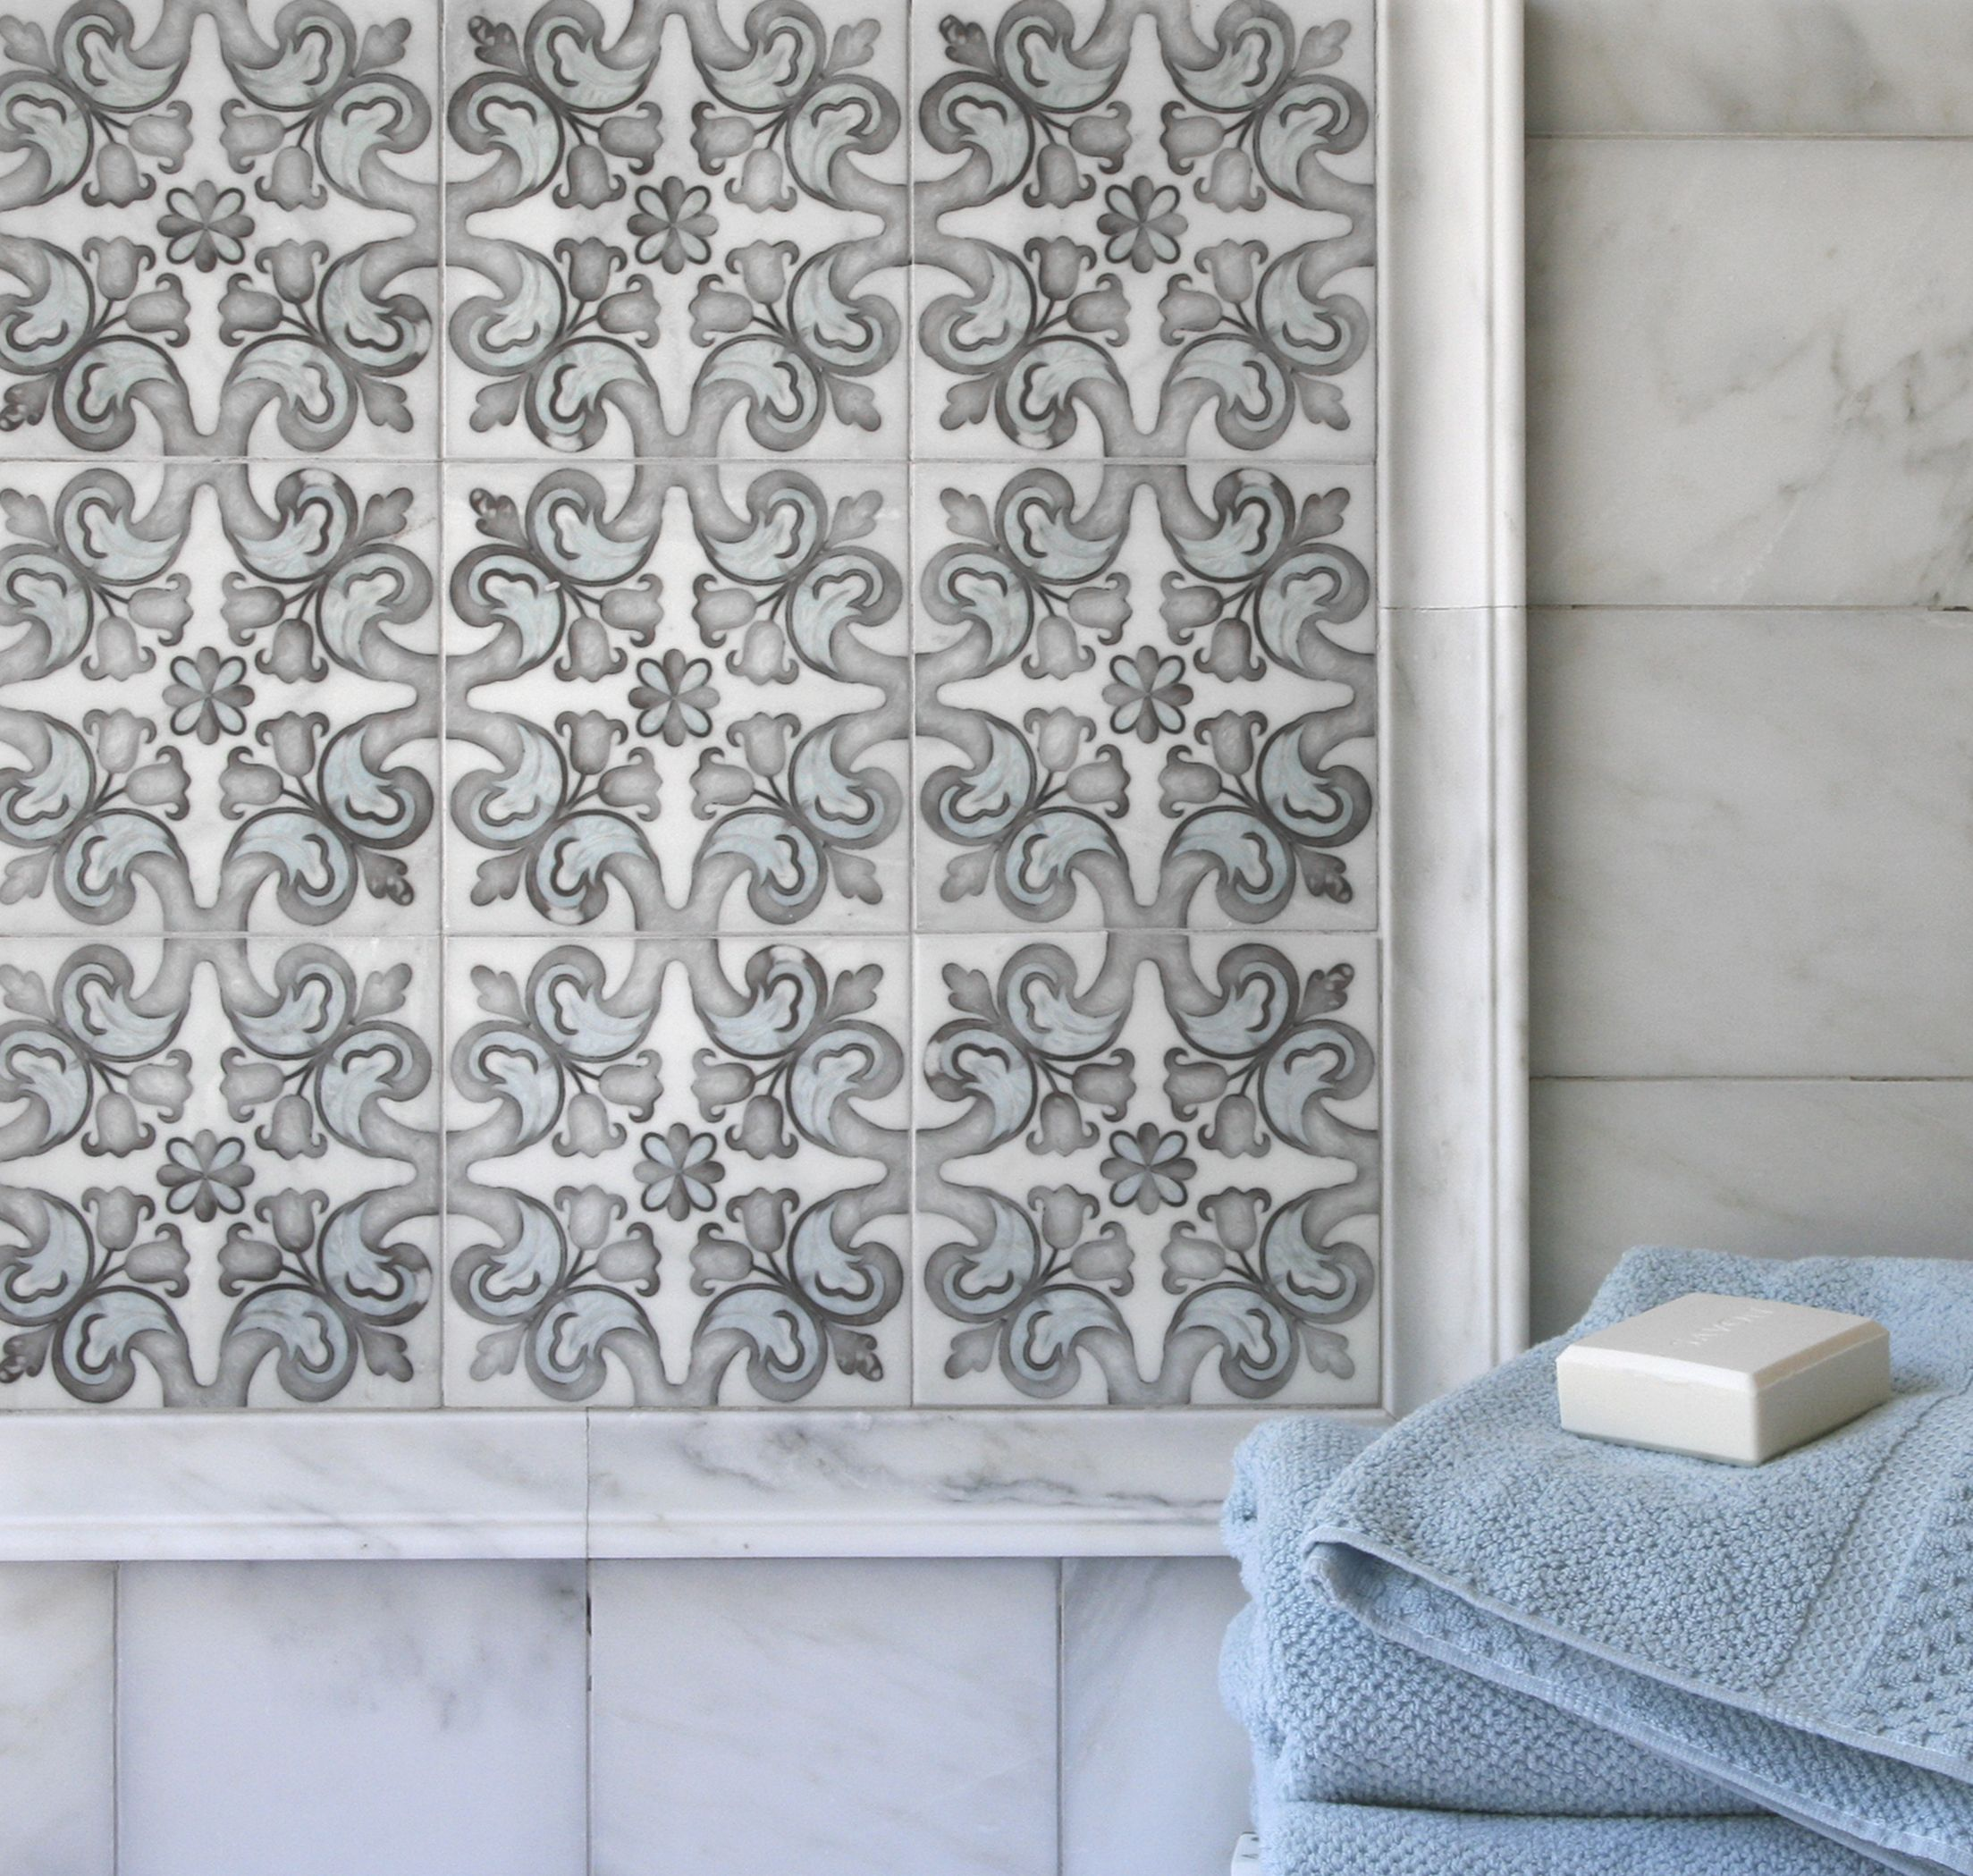 Marbella Pattern, part of the Artisan Stone Tile collection ...